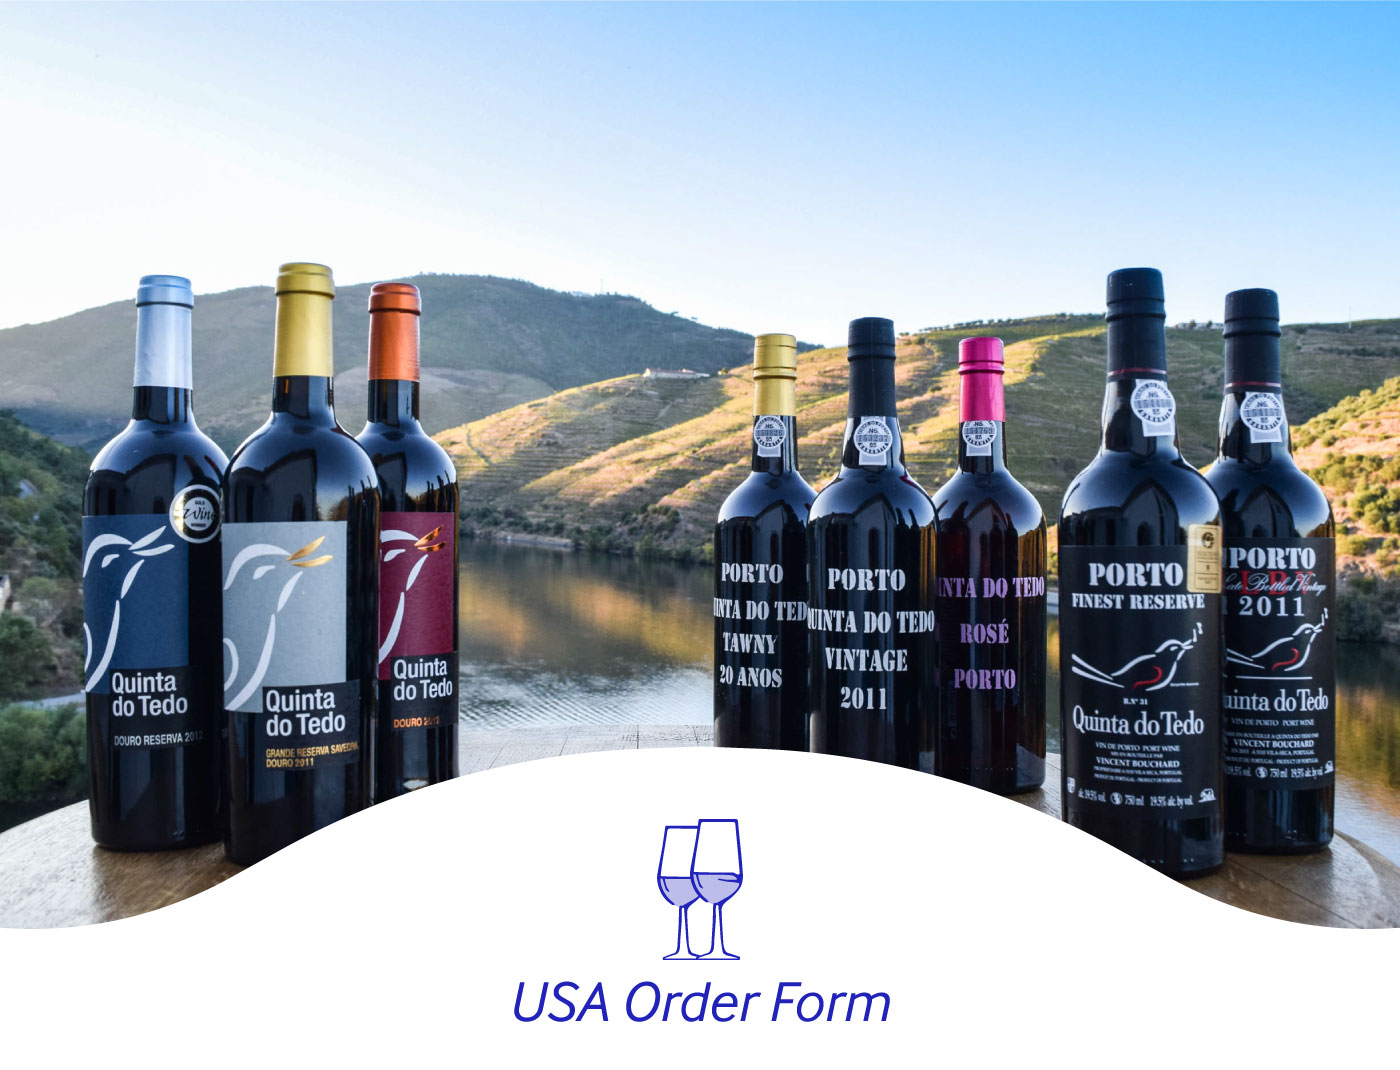 qdt-USA-order-form-header-porto-glasses.jpg